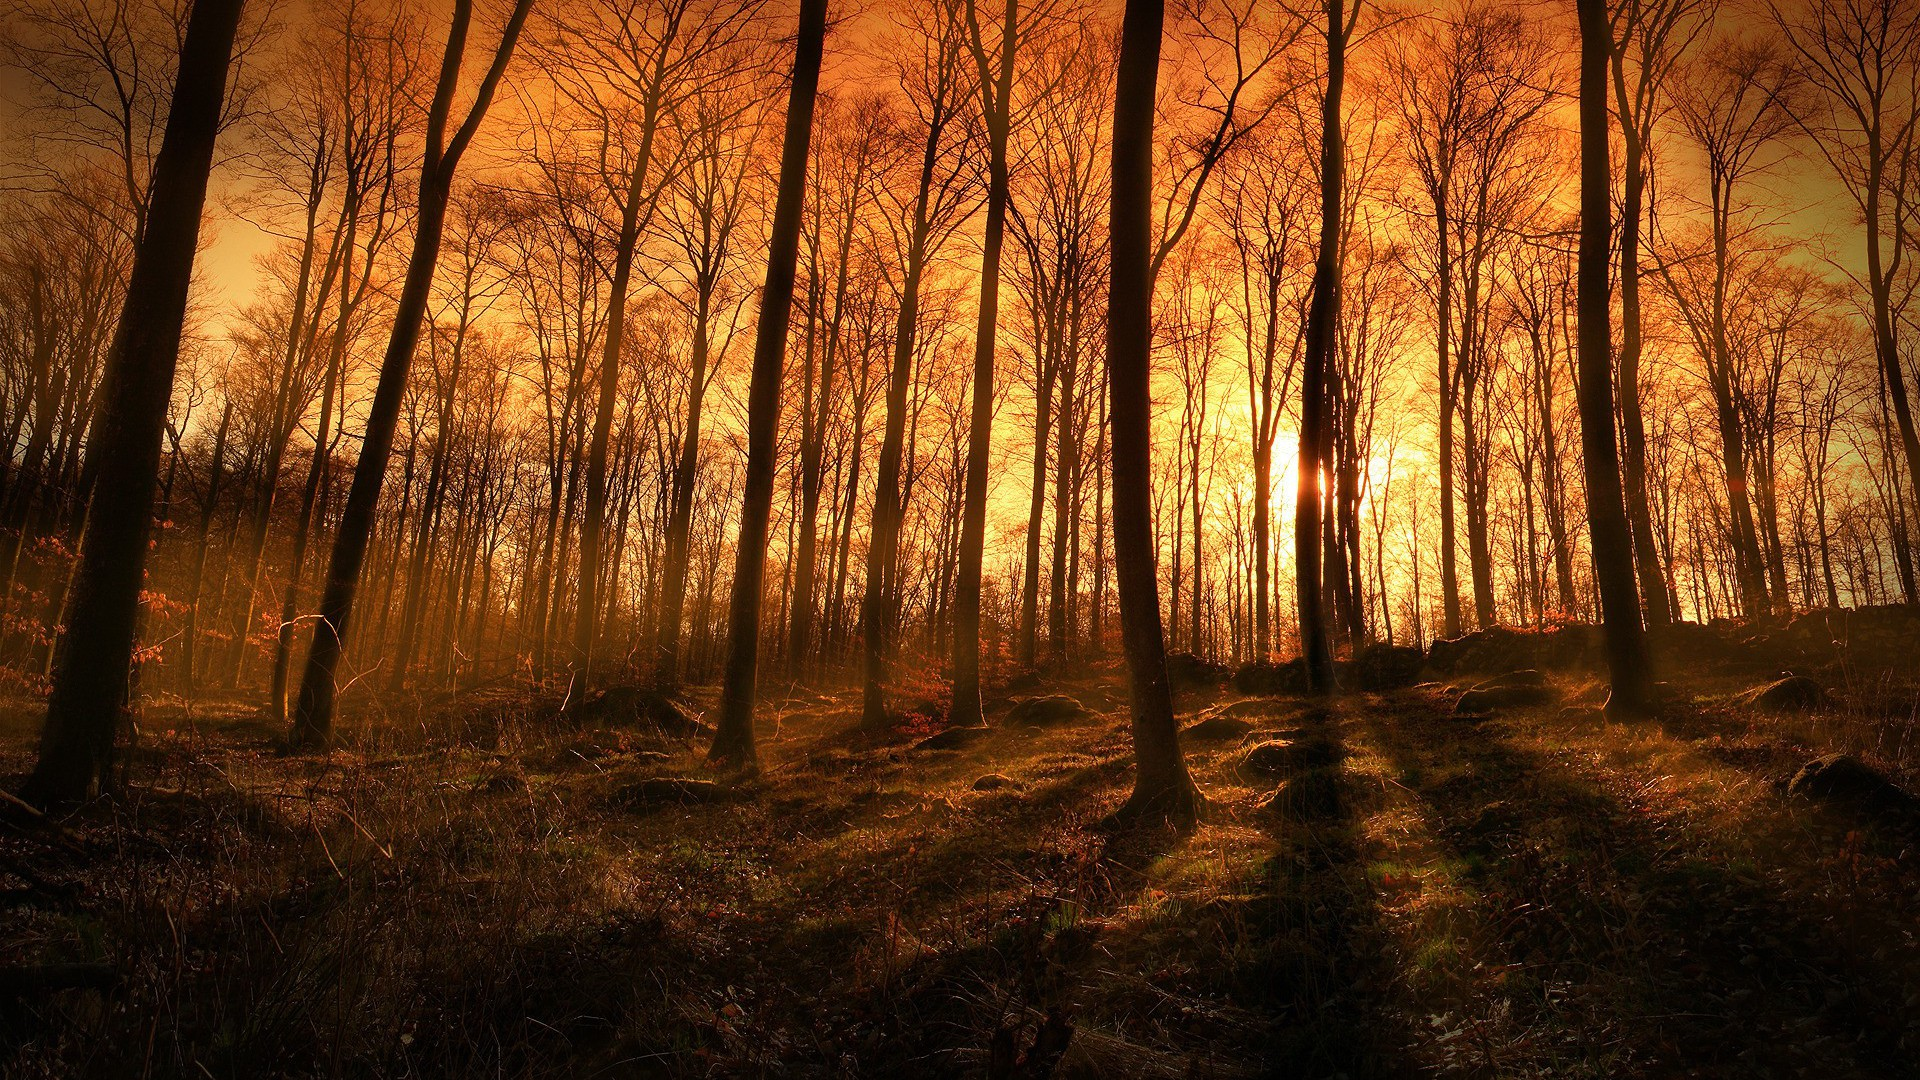 Fall Landscape Wallpapers Free Sunset Sunbeams Coming Through The Forest Wallpaper